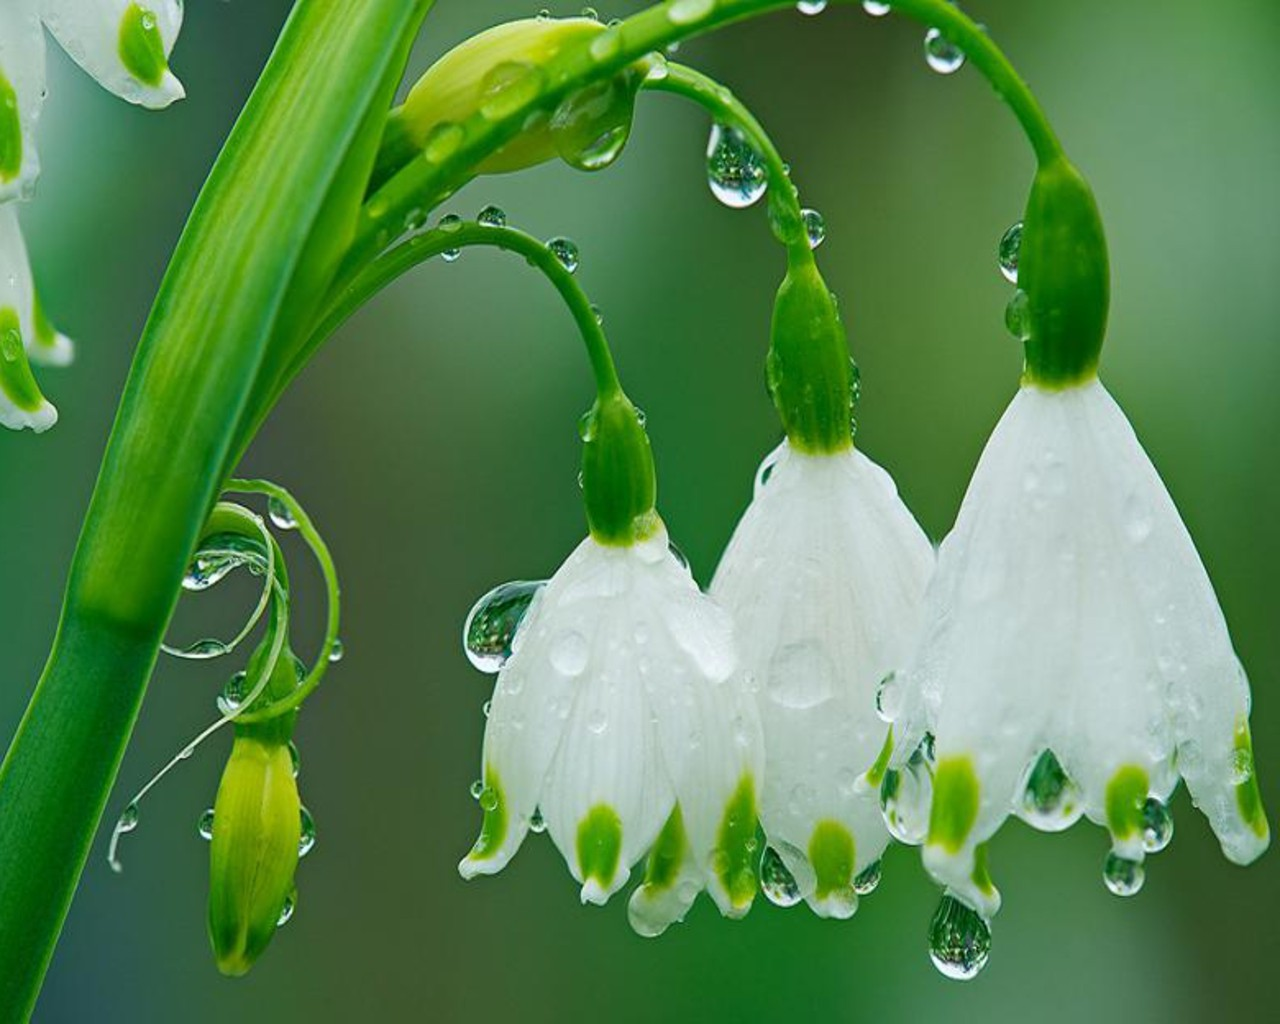 Rain Flowers Wallpaper 1280x1024 Rain Flowers Garden Spring 1280x1024